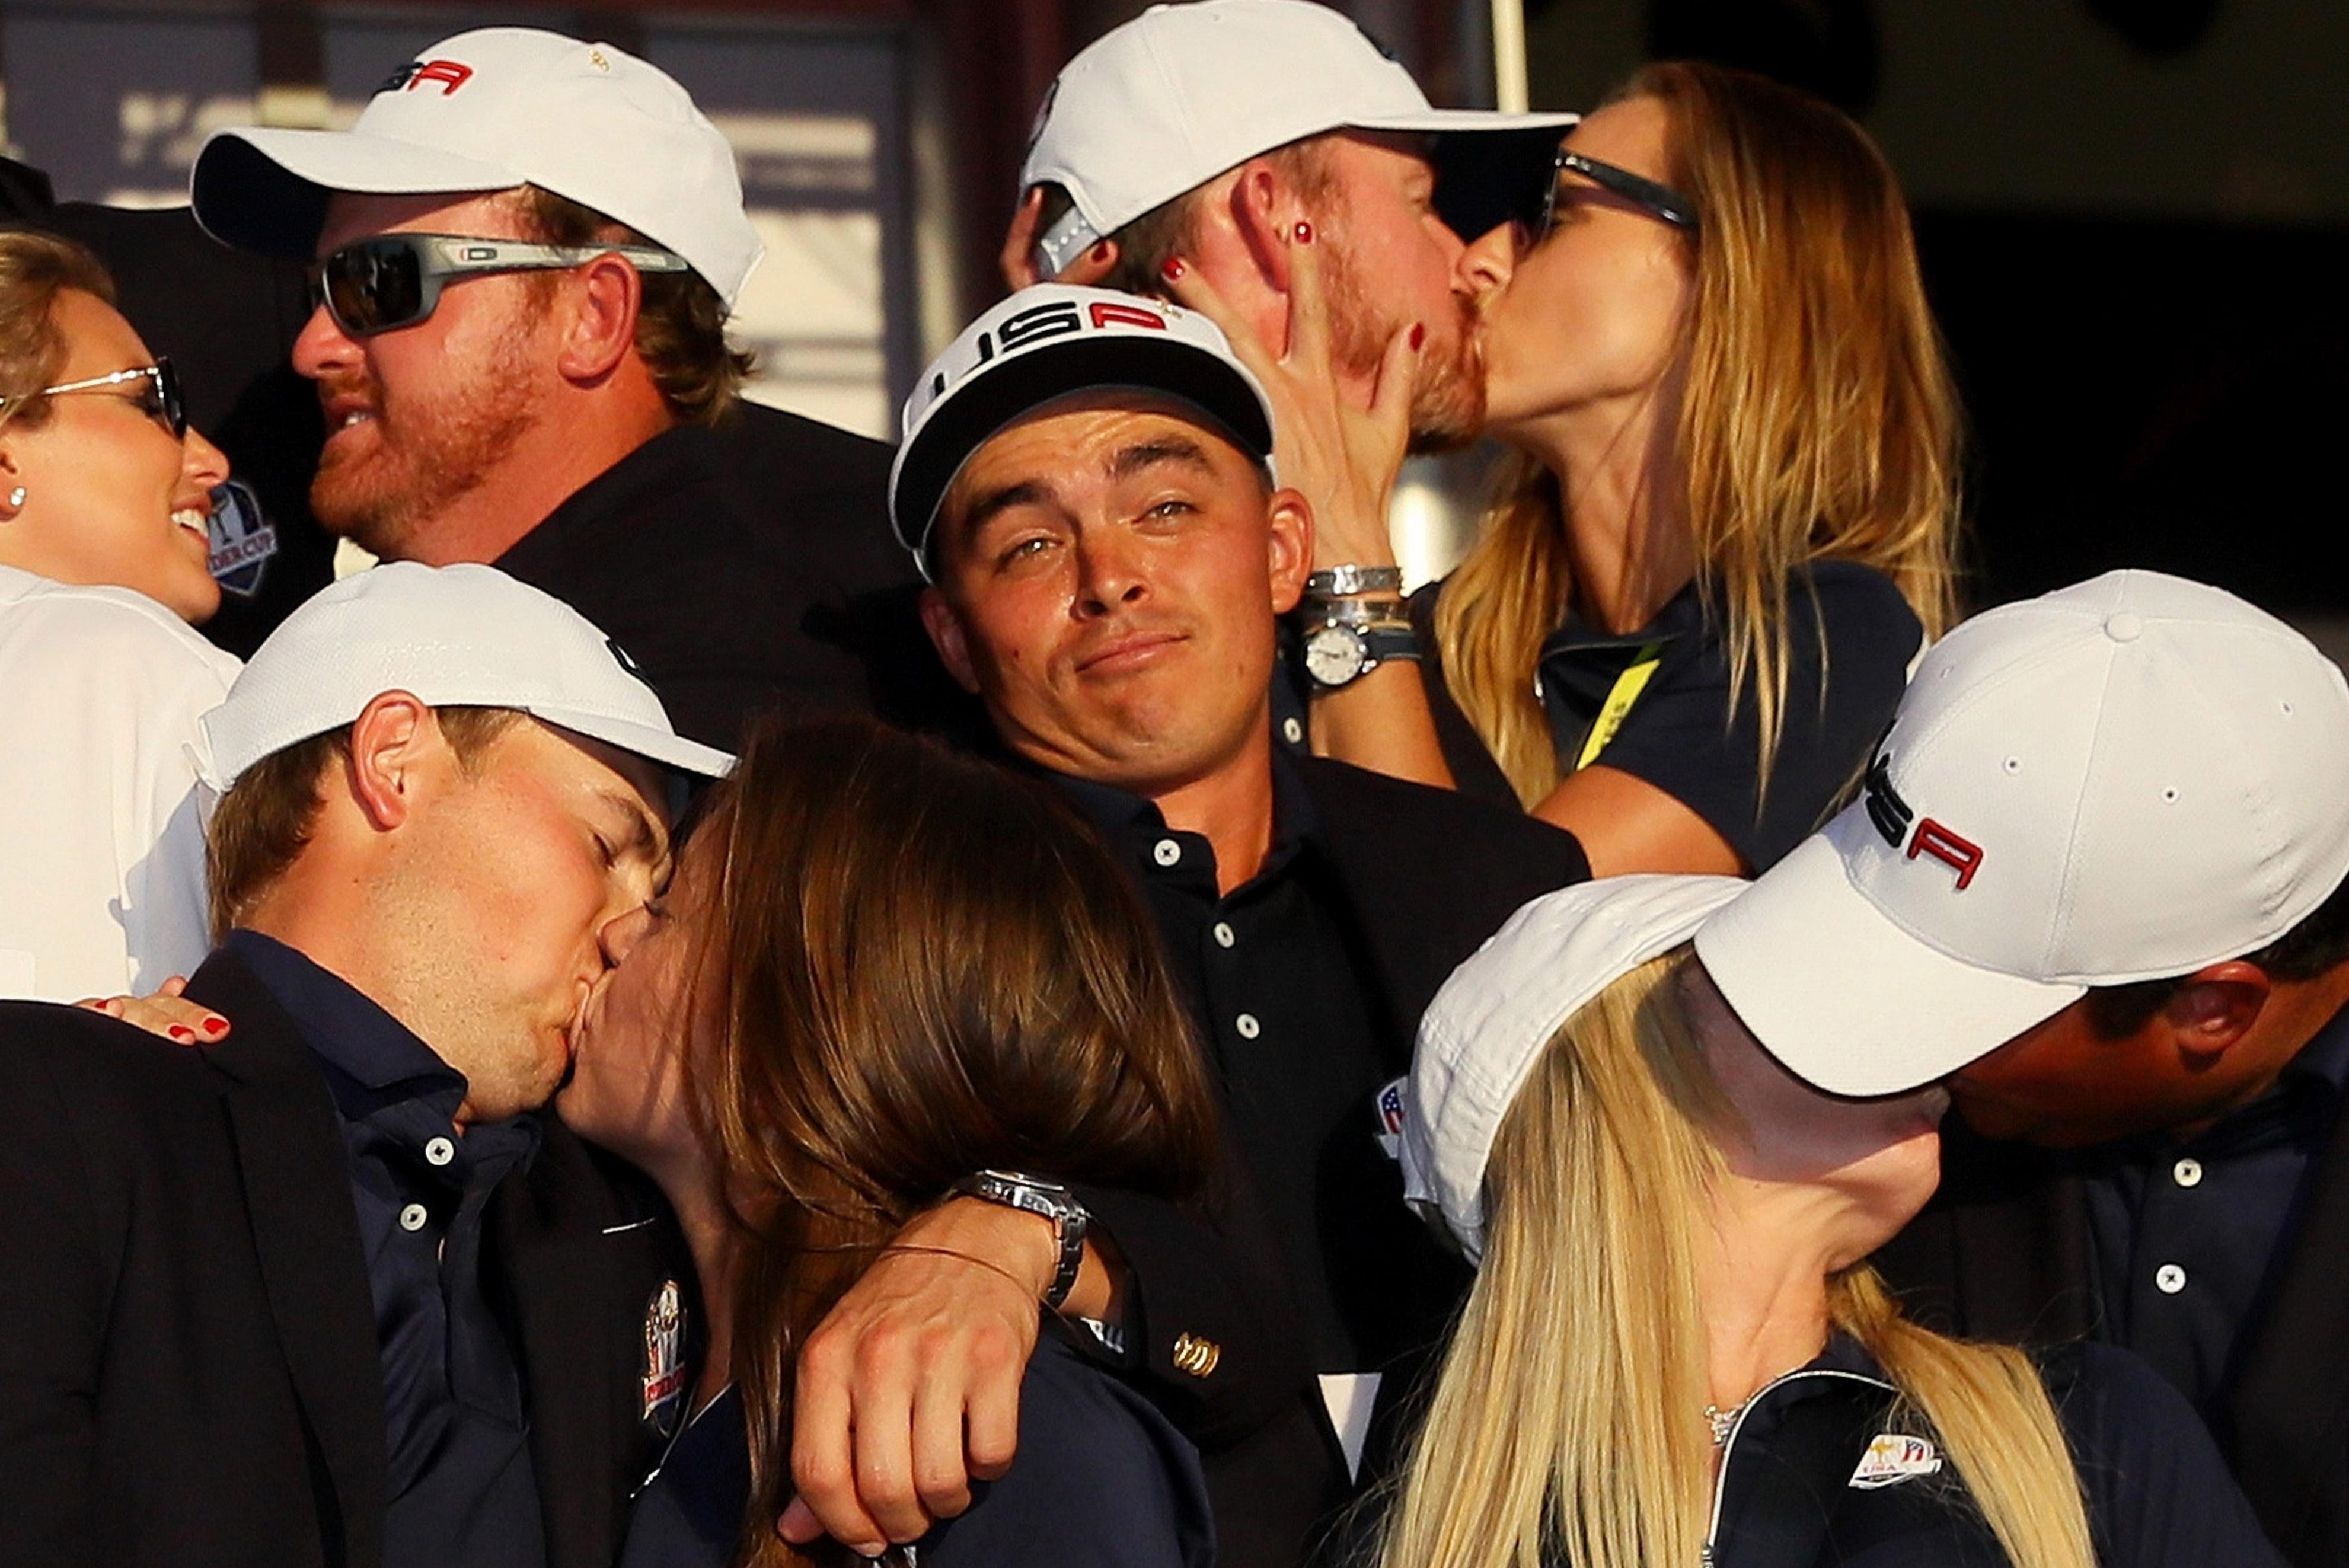 US ace Rickie Fowler looks on as J.B. Holmes, Erica Holmes, Jimmy Walker, Erin Walker, Jordan Spieth, Annie Verret, Justine Reed and Patrick Reed celebrate during the 2016 singles matches at Hazeltine